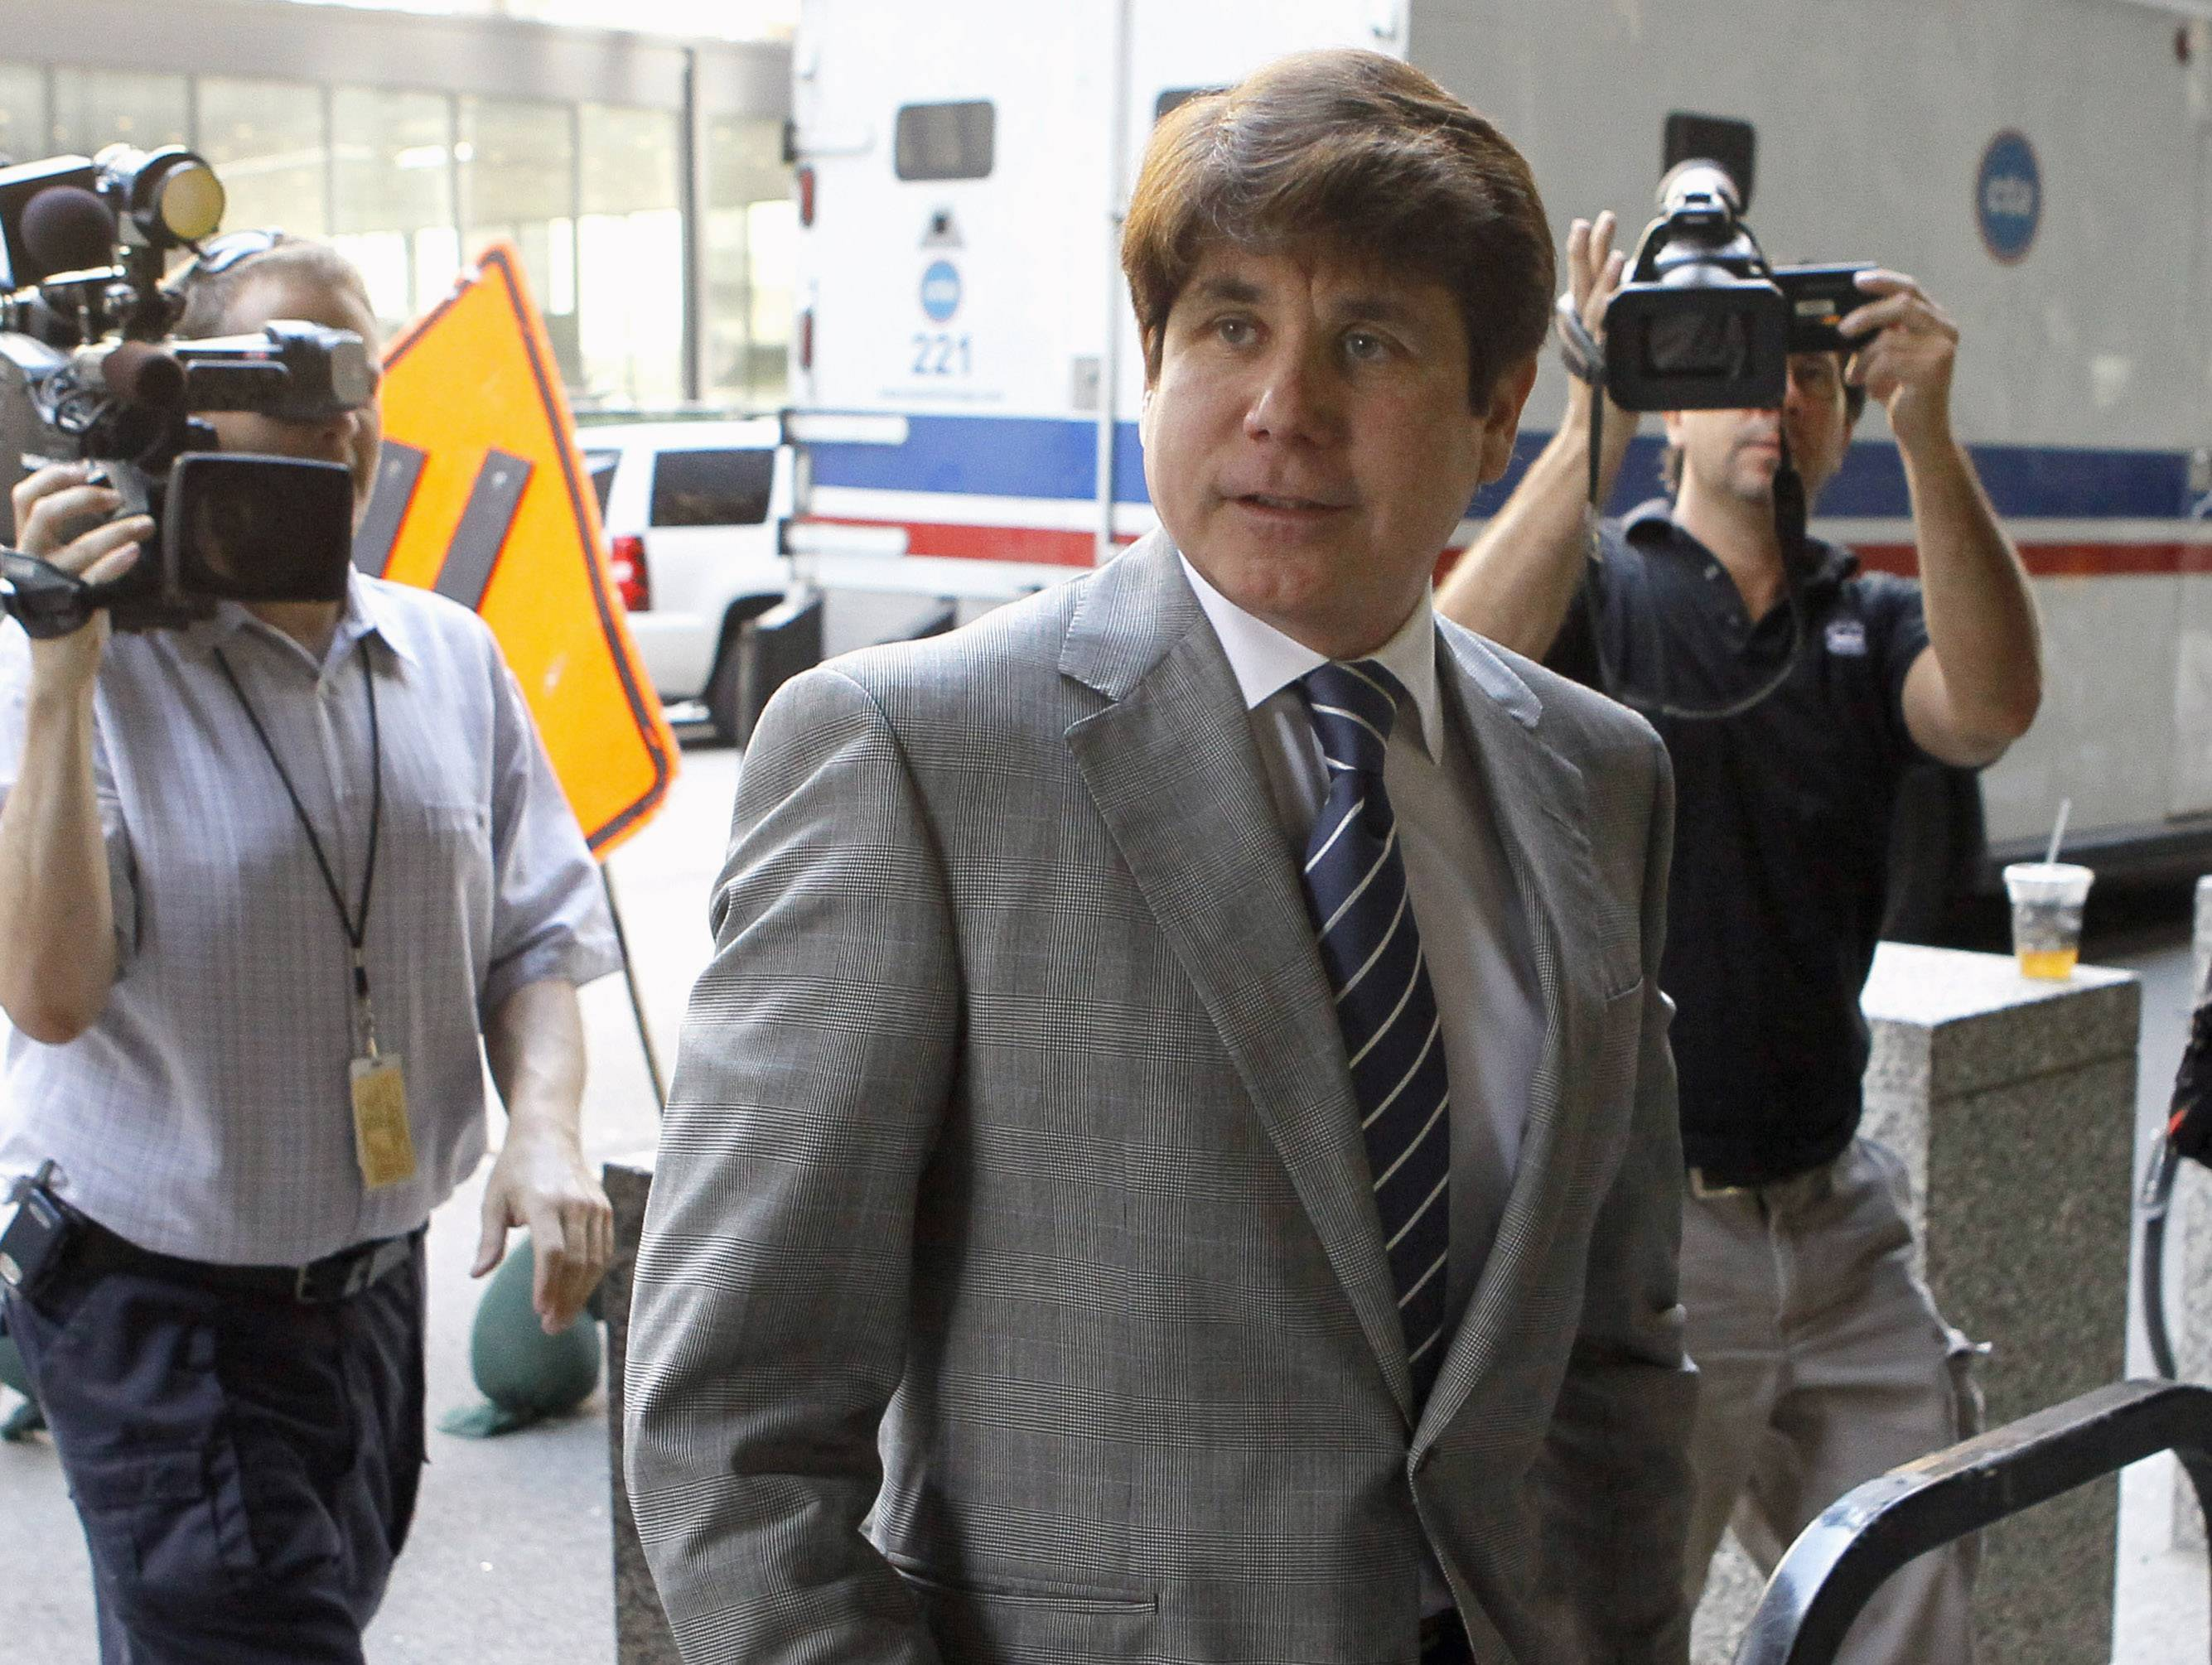 Rod Blagojevich received a fair retrial and his convictions for corruption including trying to sell President Barack Obama's Senate seat should stand, prosecutors said Tuesday in their retort to the ousted Illinois governor's request for another new trial.